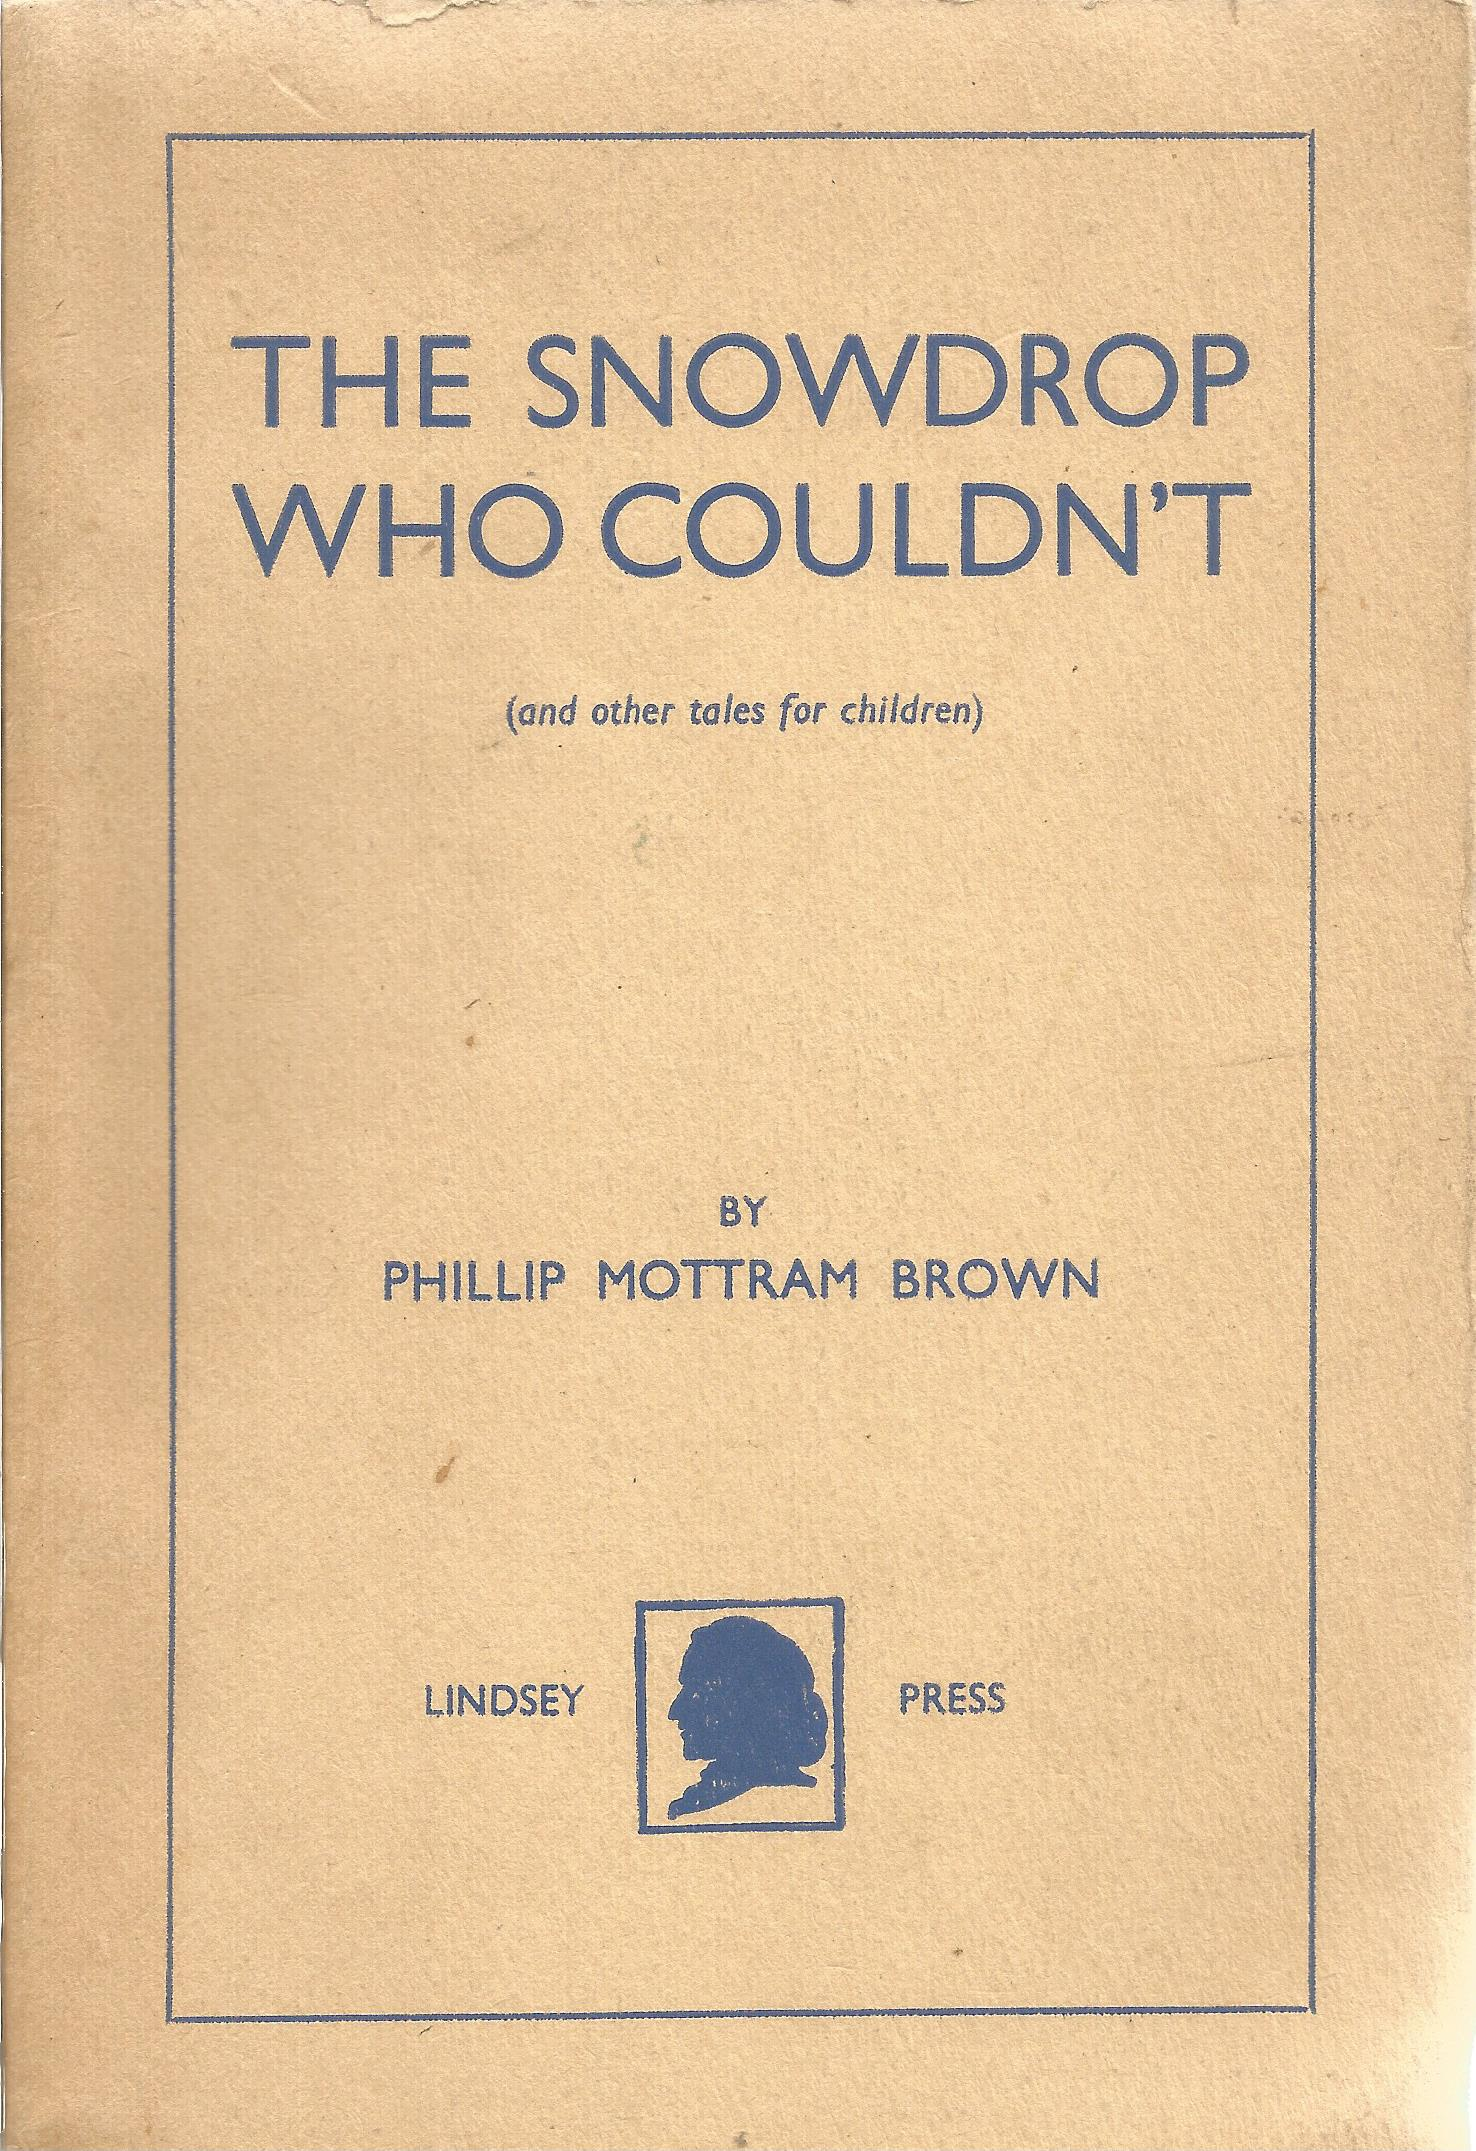 Phillip Mottram Brown Paperback Book The Snowdrop who Couldn't (and other tales for Children) signed